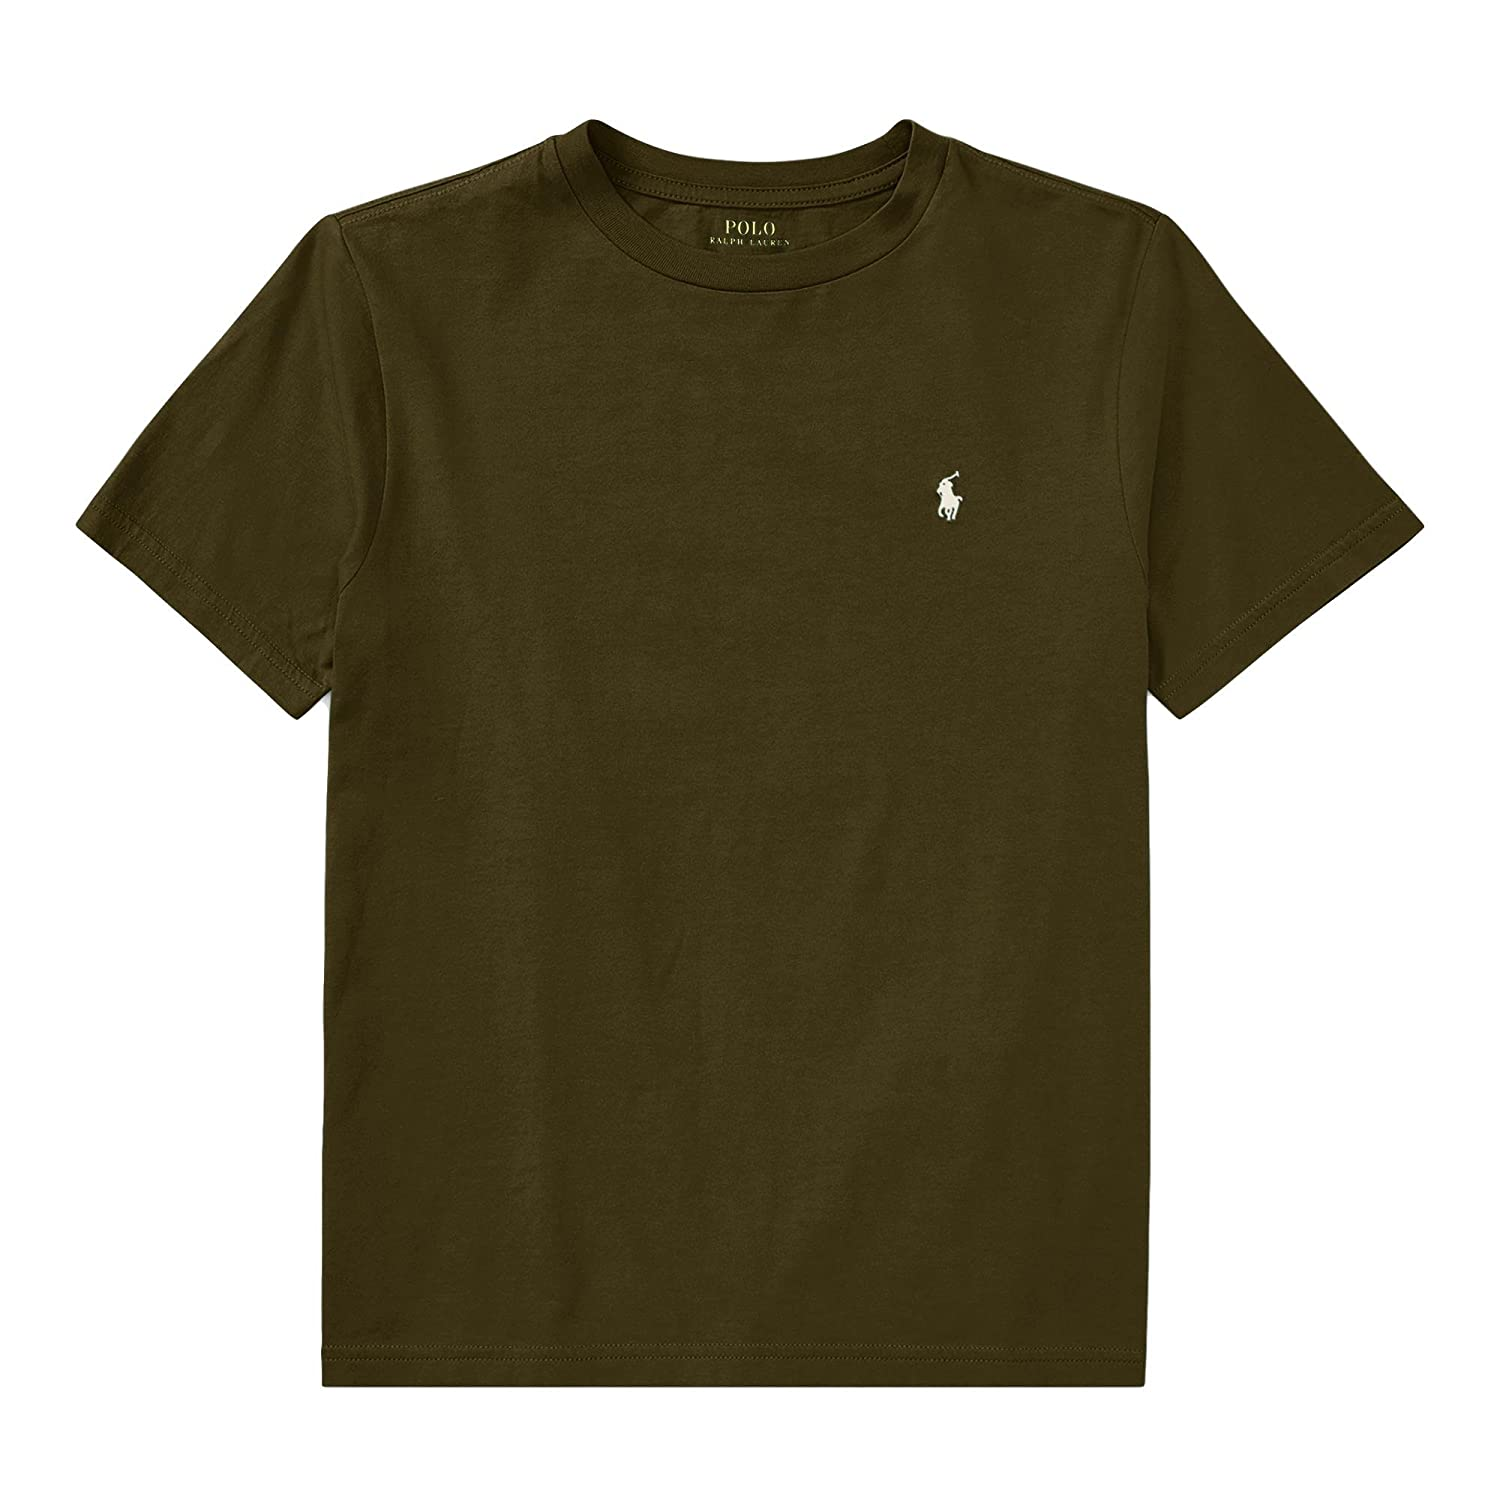 Polo Ralph Lauren Boys Pony Logo Short Sleeve T-shirt